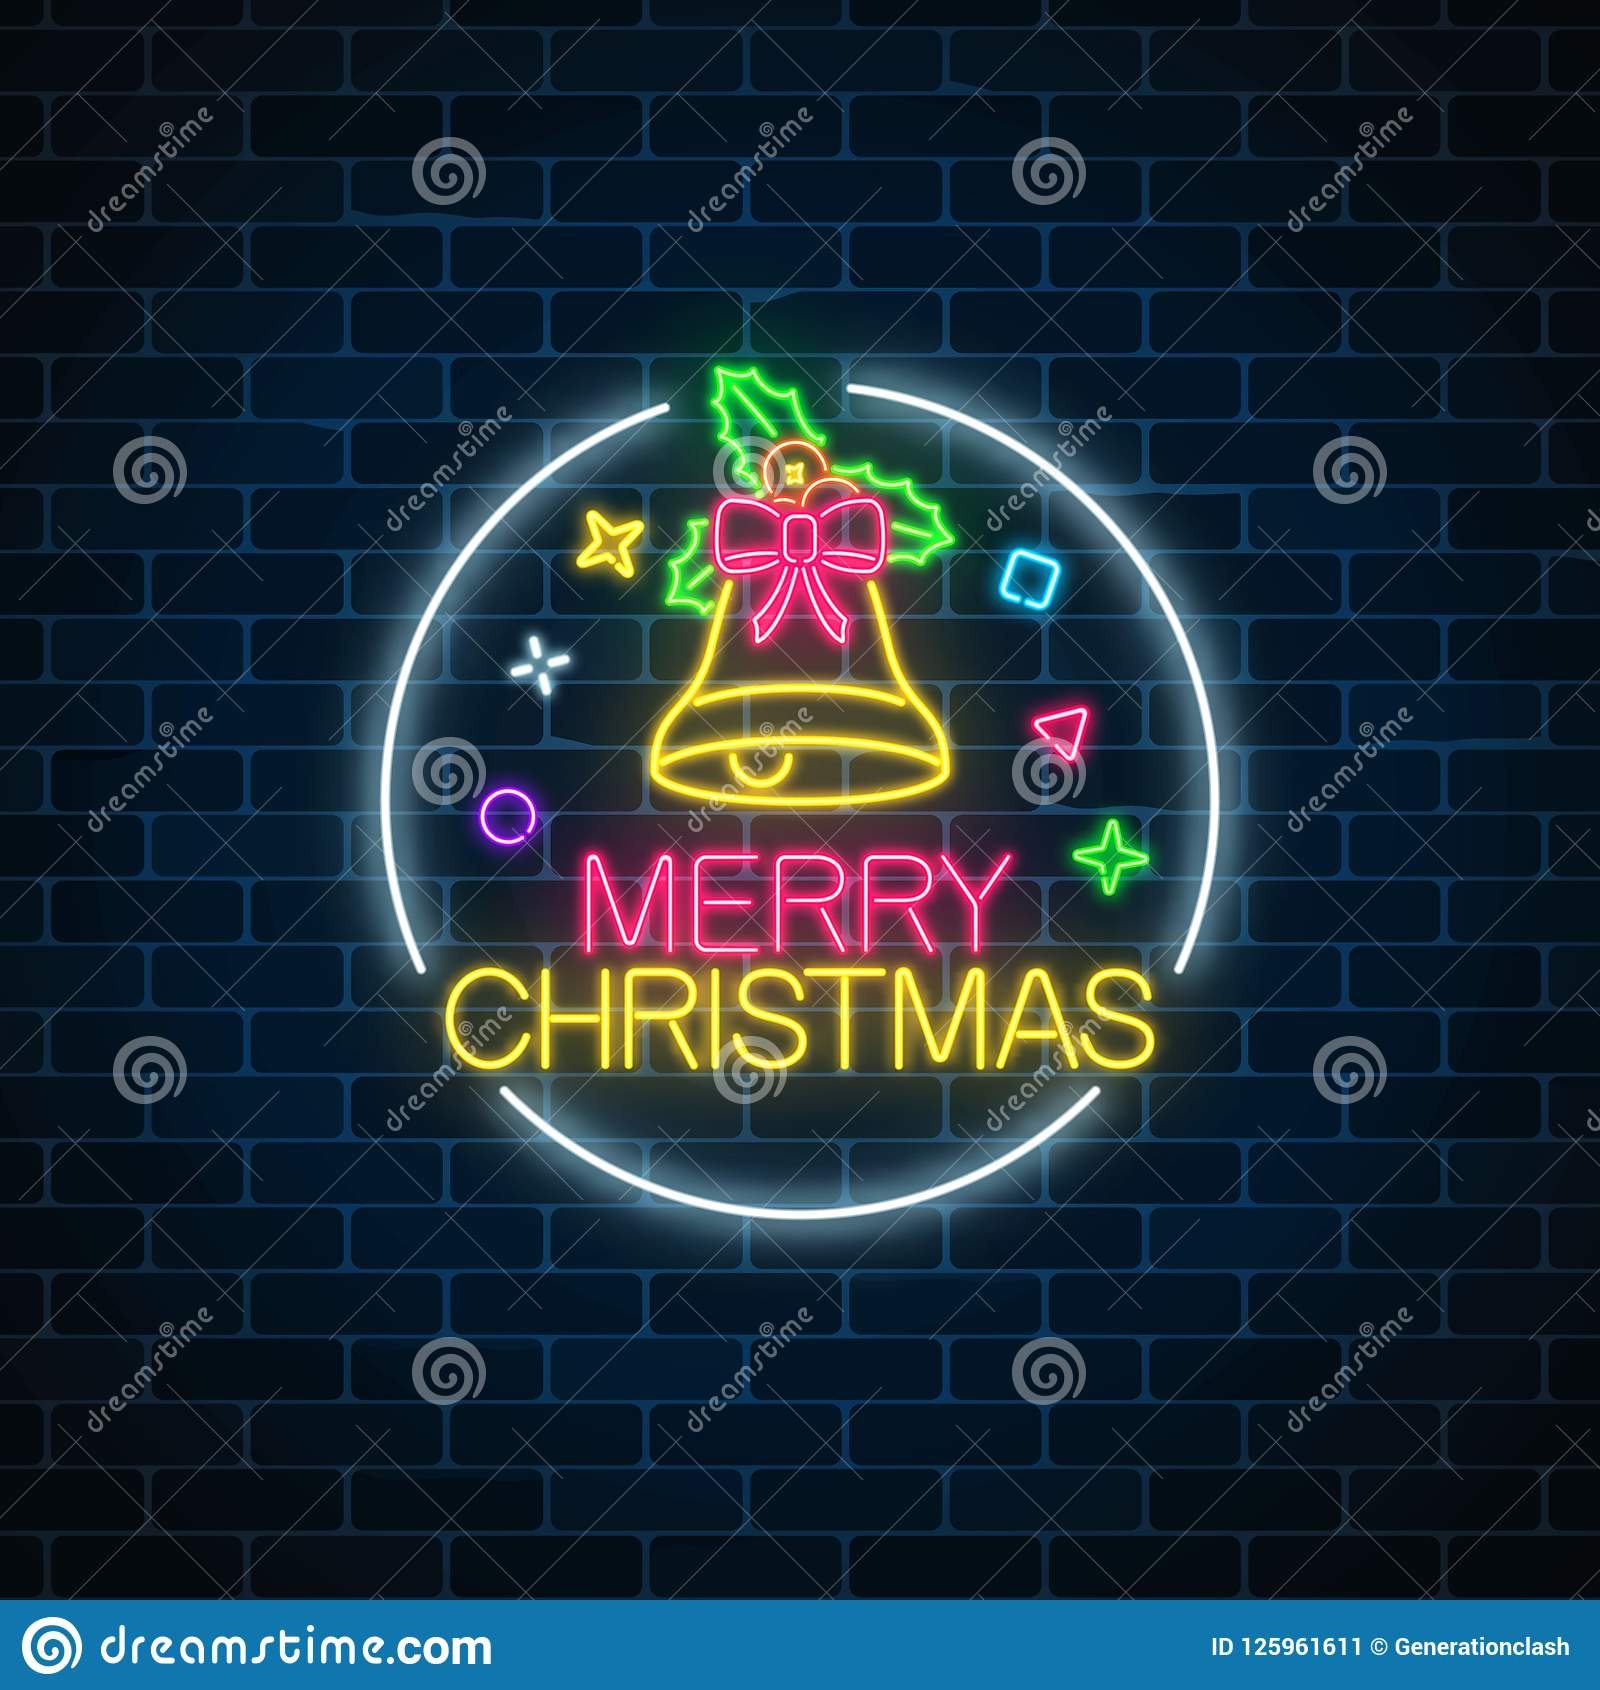 Glowing Neon Christmas Sign With Christmas Bell, Bow-knot And Holly In Circle Frame. Christmas ...